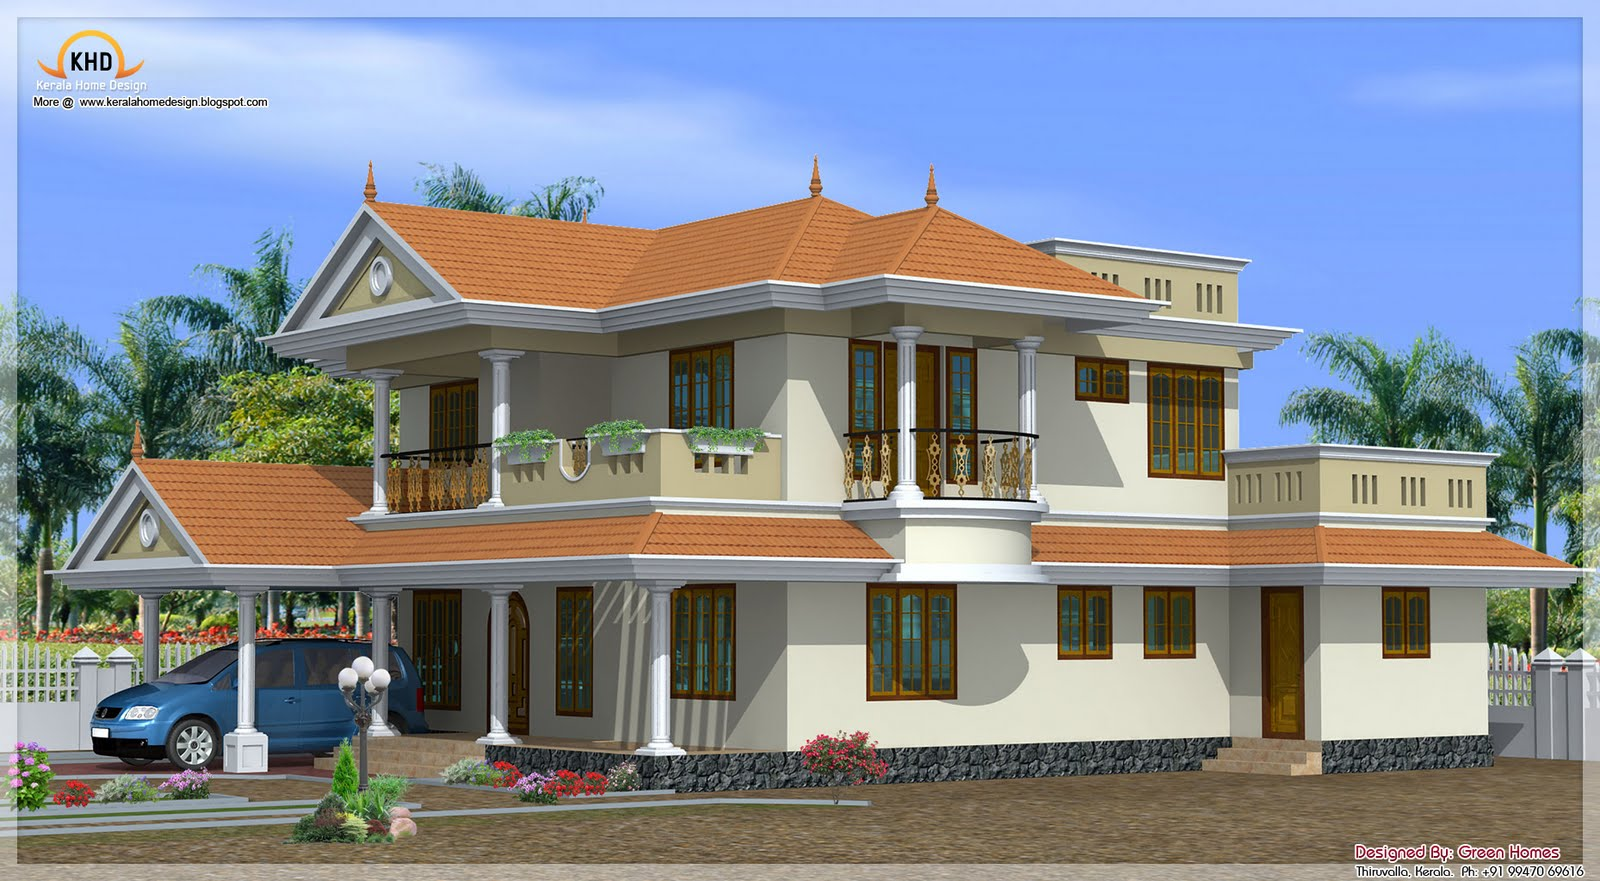 Indian home design indian home decor Building plans indian homes